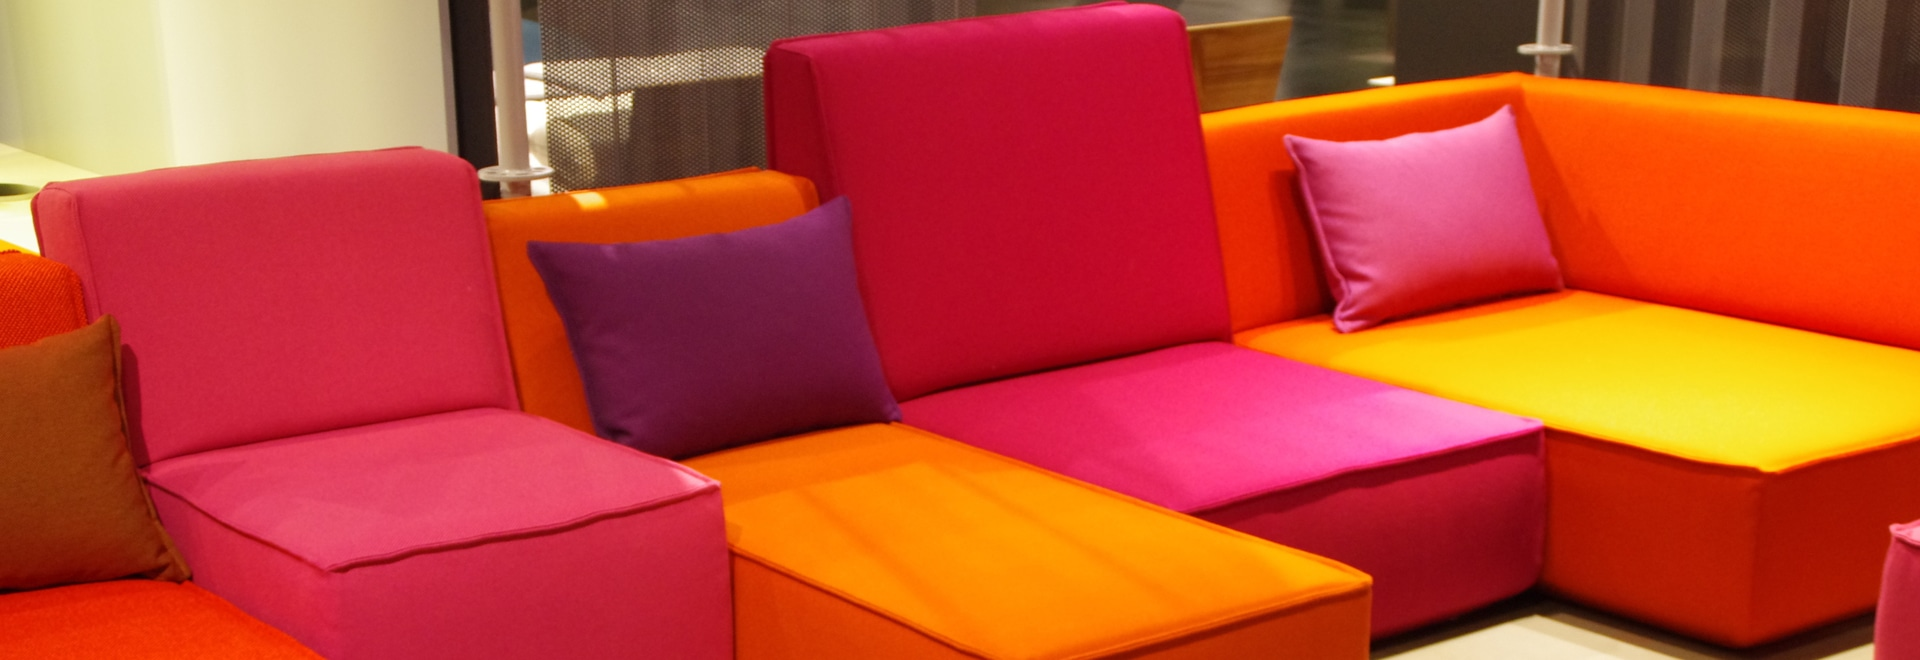 Ellen-Sofa in Orange und in rosa